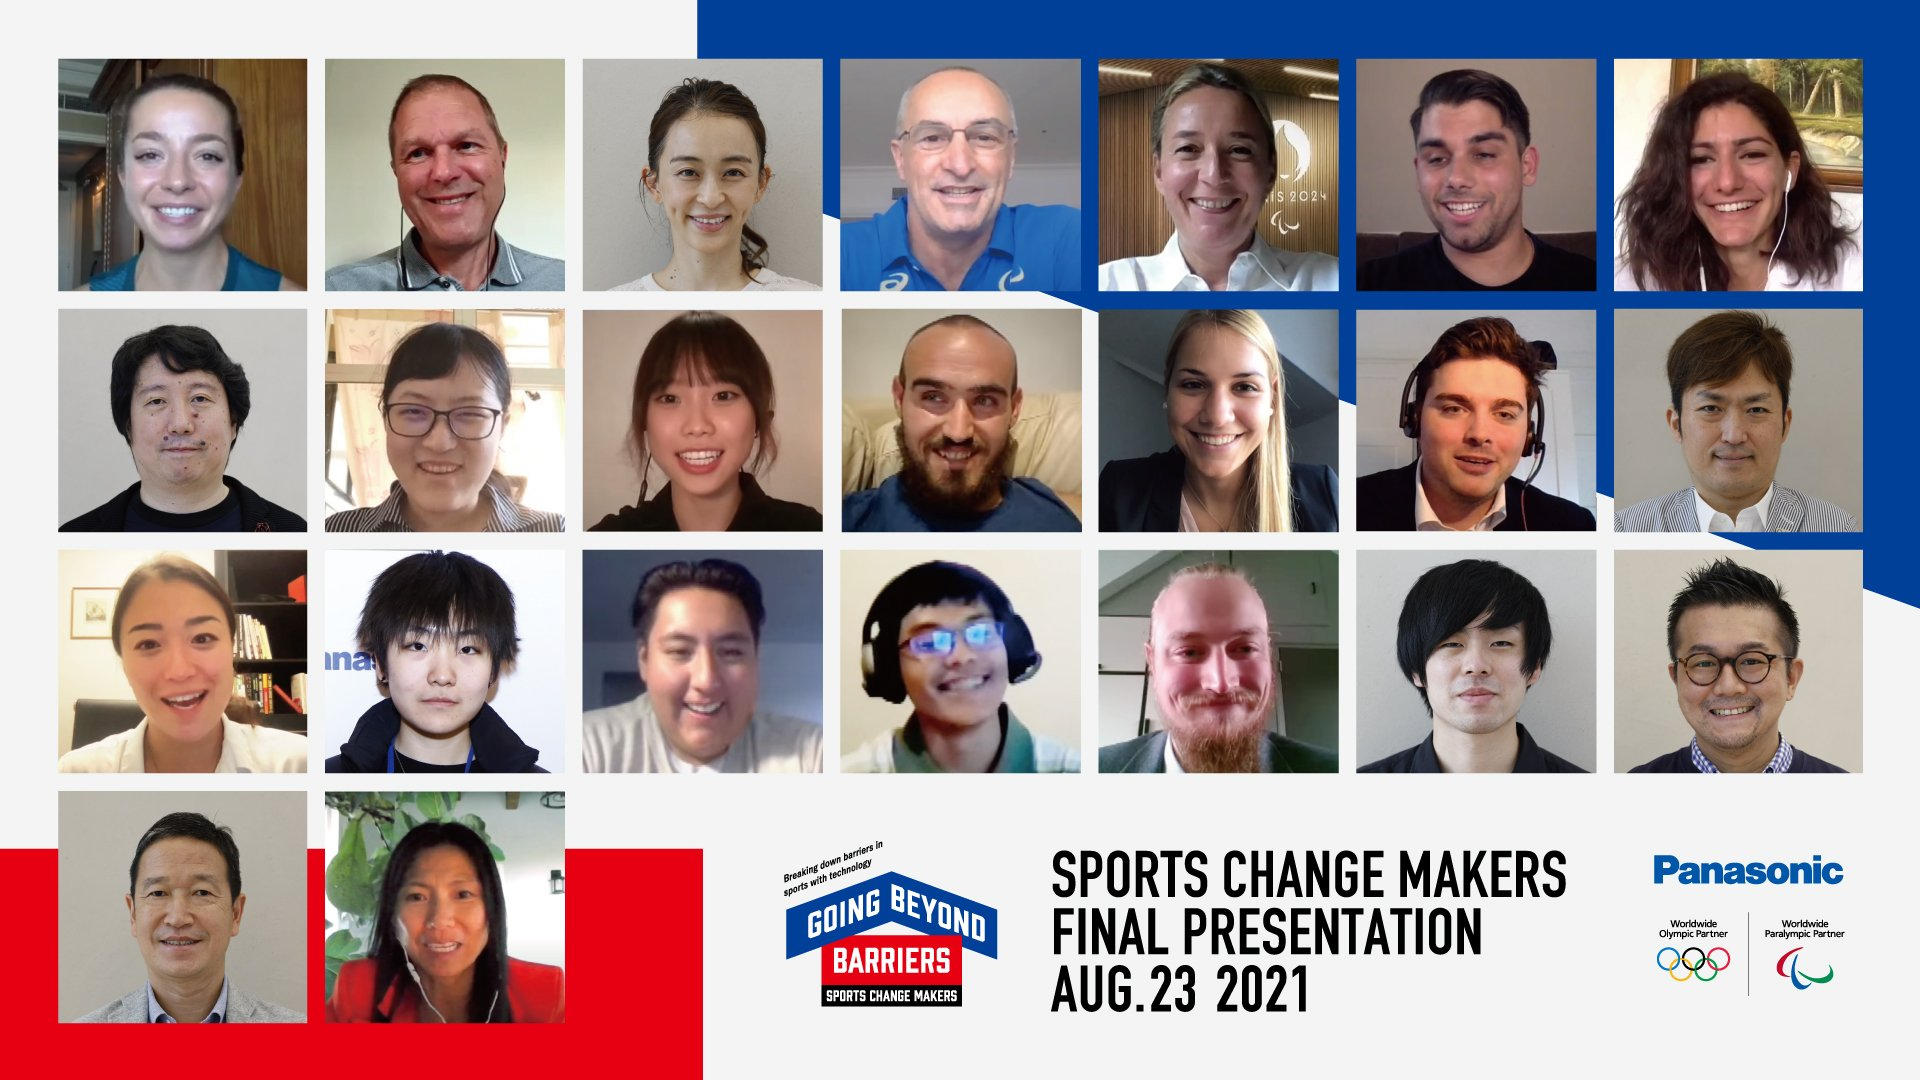 SPORTS CHANGE MAKERS Final Presentation on August 23, 2021